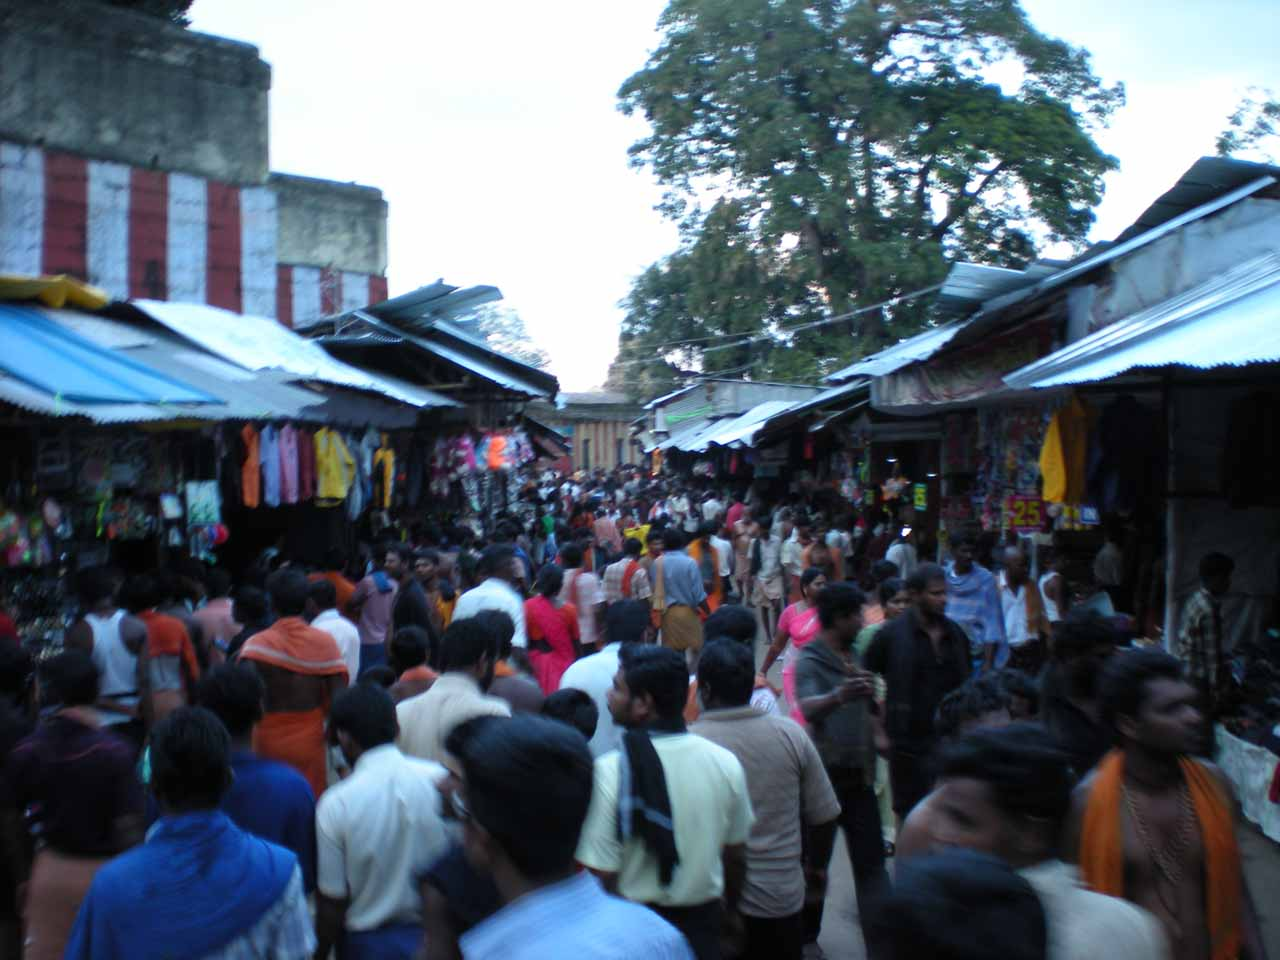 When the sun went down, the marketplace at Courtallam Main Falls came alive with a sea of humanity converging on this one spot for a variety of reasons - religious, social, or just sightseeing